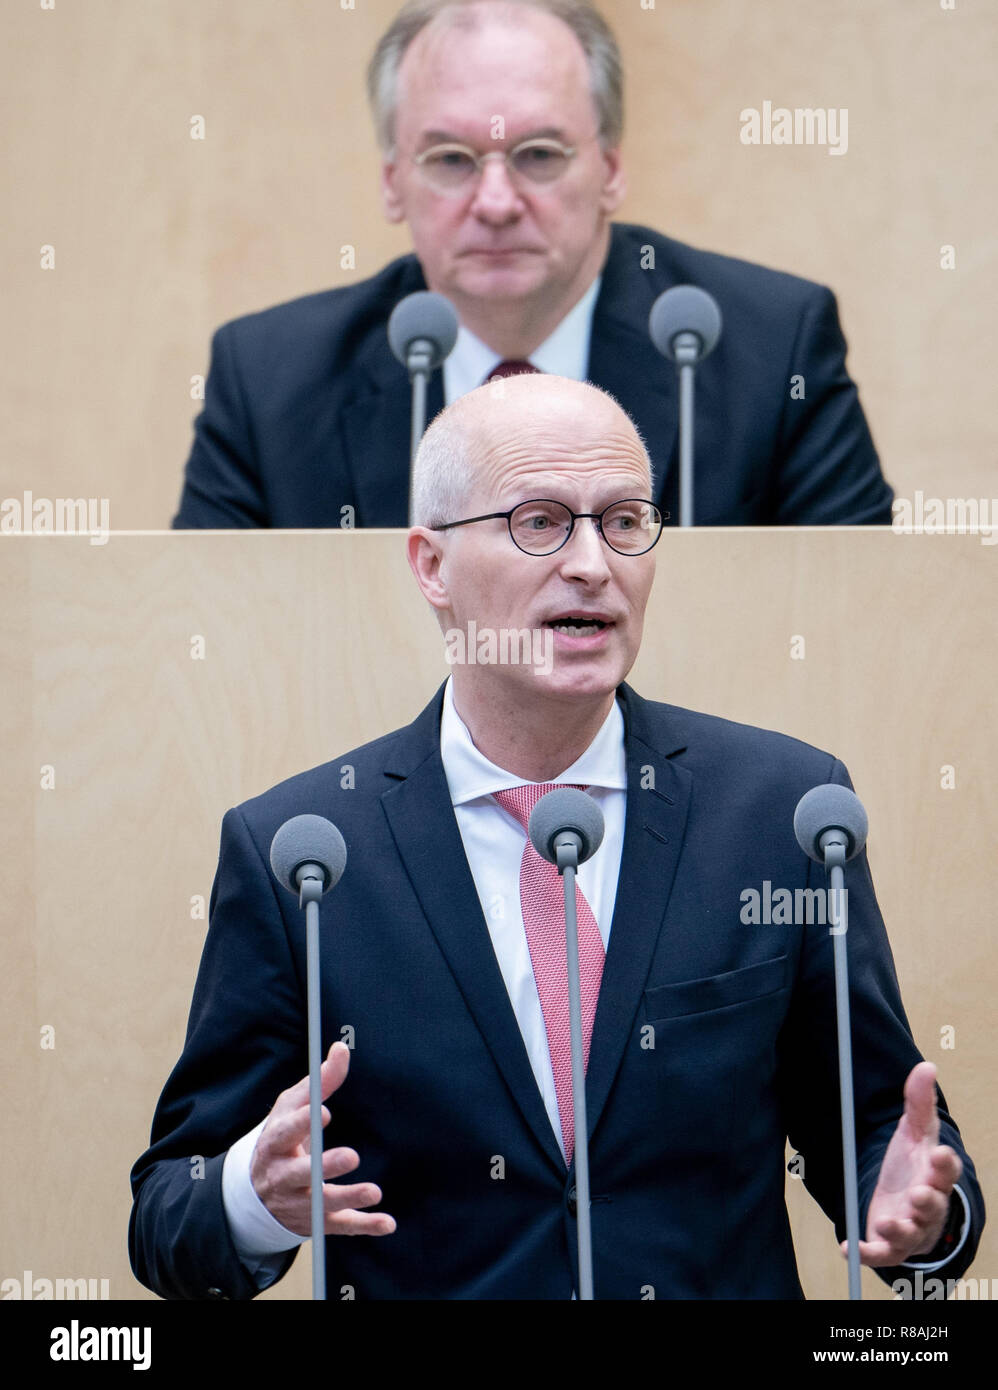 Berlin, Germany. 14th Dec, 2018. Peter Tschentscher (SPD), First Mayor of the Free and Hanseatic City of Hamburg, will speak during the session of the Bundesrat. In the last session of the year, the regional chamber finally deals with several laws of the grand coalition, including tightening the rent brake, more further training, higher nursing care contributions in 2019, postponement of the ban on anaesthetised piglet castration. Credit: Kay Nietfeld/dpa/Alamy Live News - Stock Image